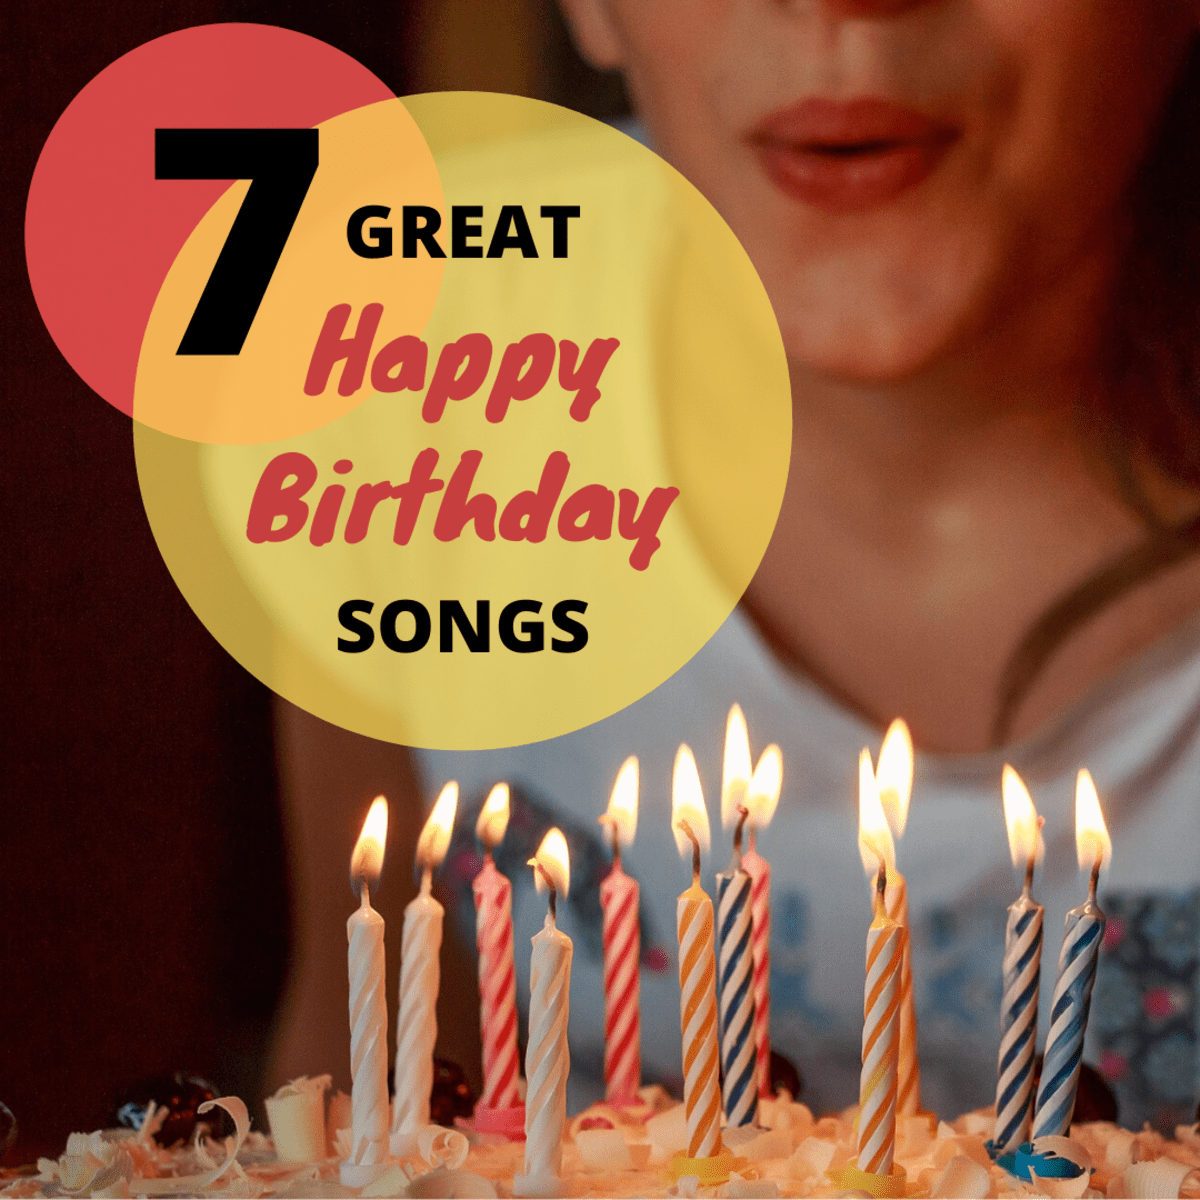 7 Of The Best Happy Birthday Songs Traditional And Funny Holidappy